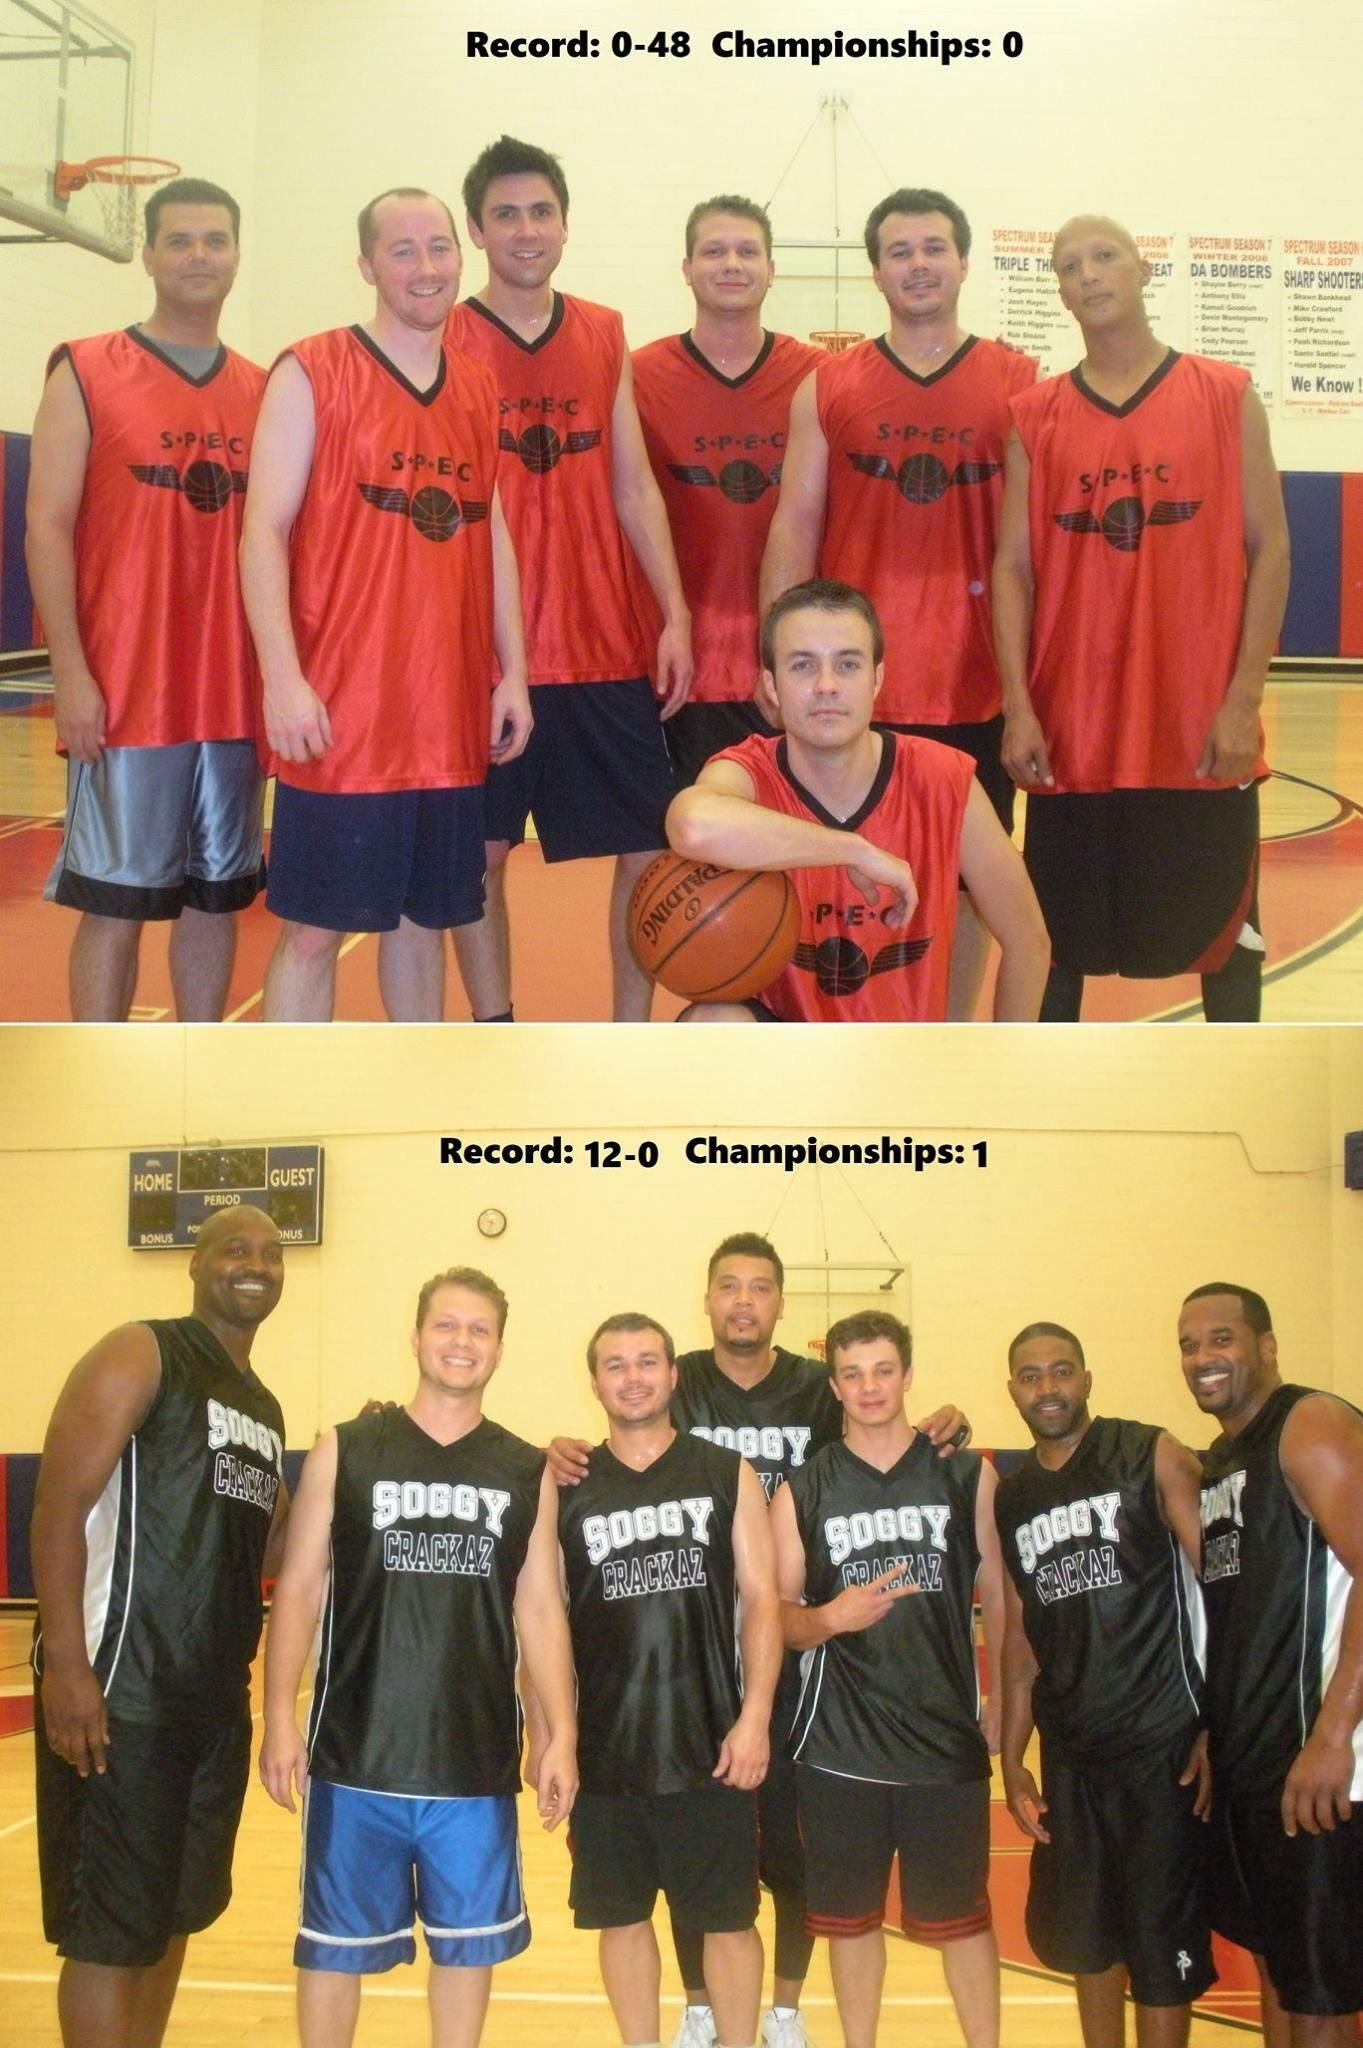 After 4 straight winless seasons my basketball team finally won the championship. THIS is what hard work and practice looks like.